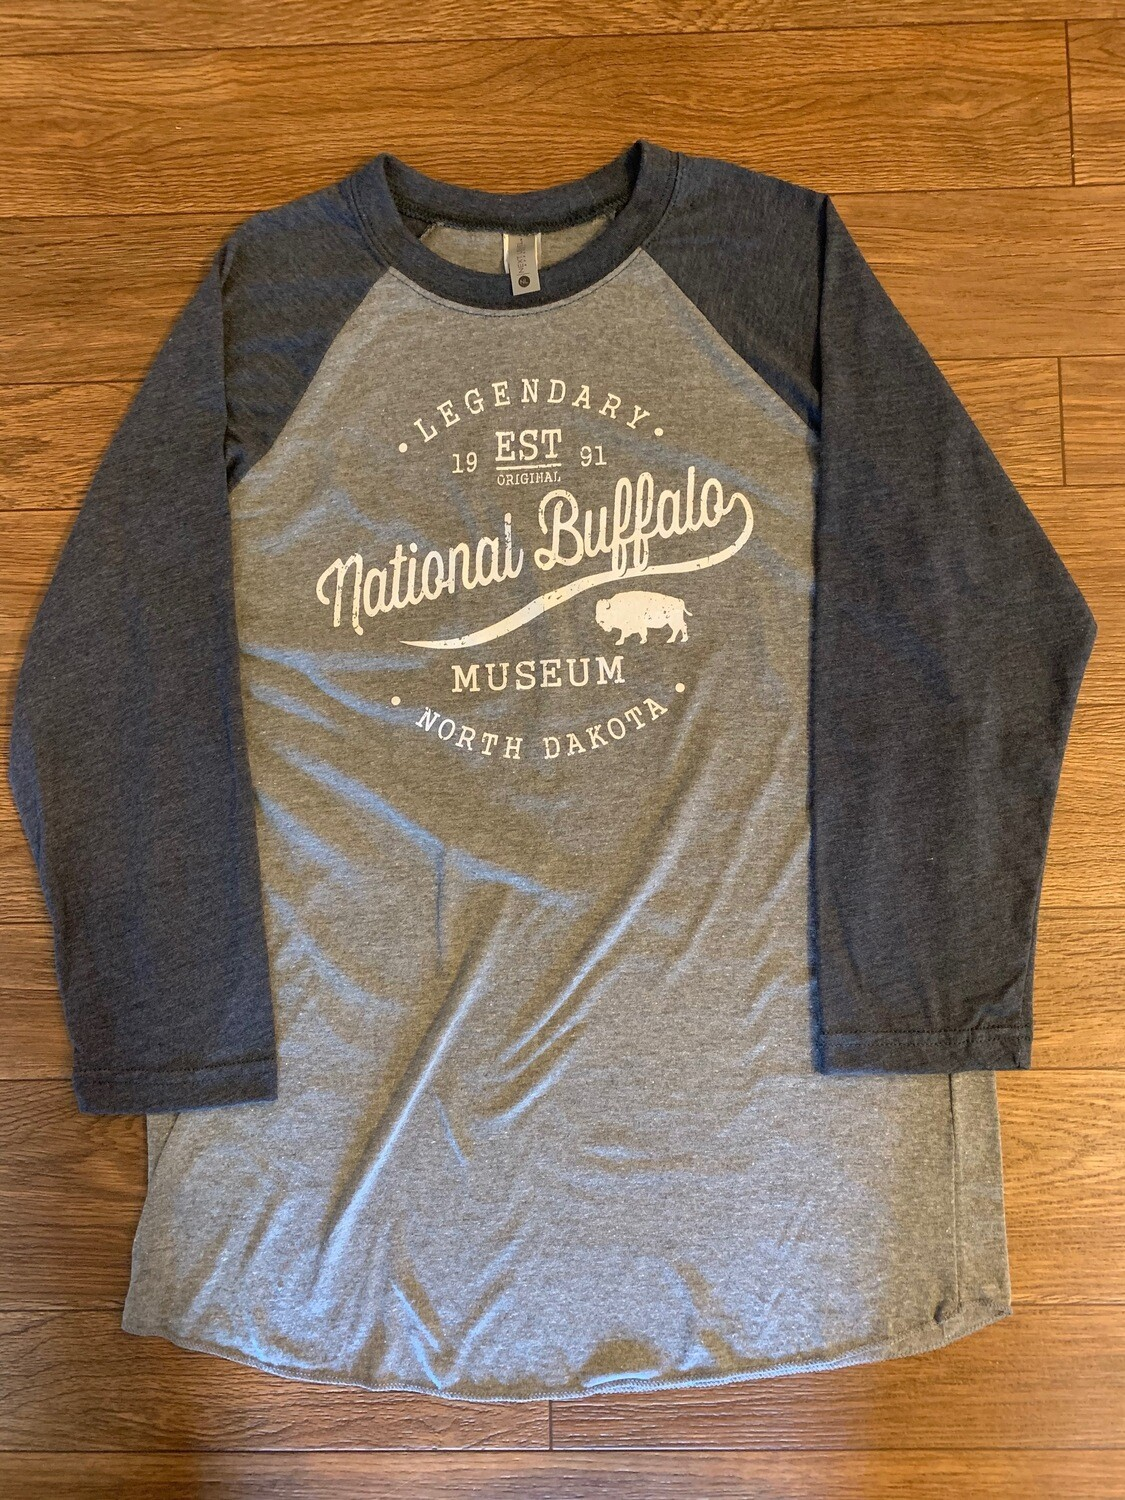 Navy Raglan Tri-Blend National Buffalo Museum T-Shirt